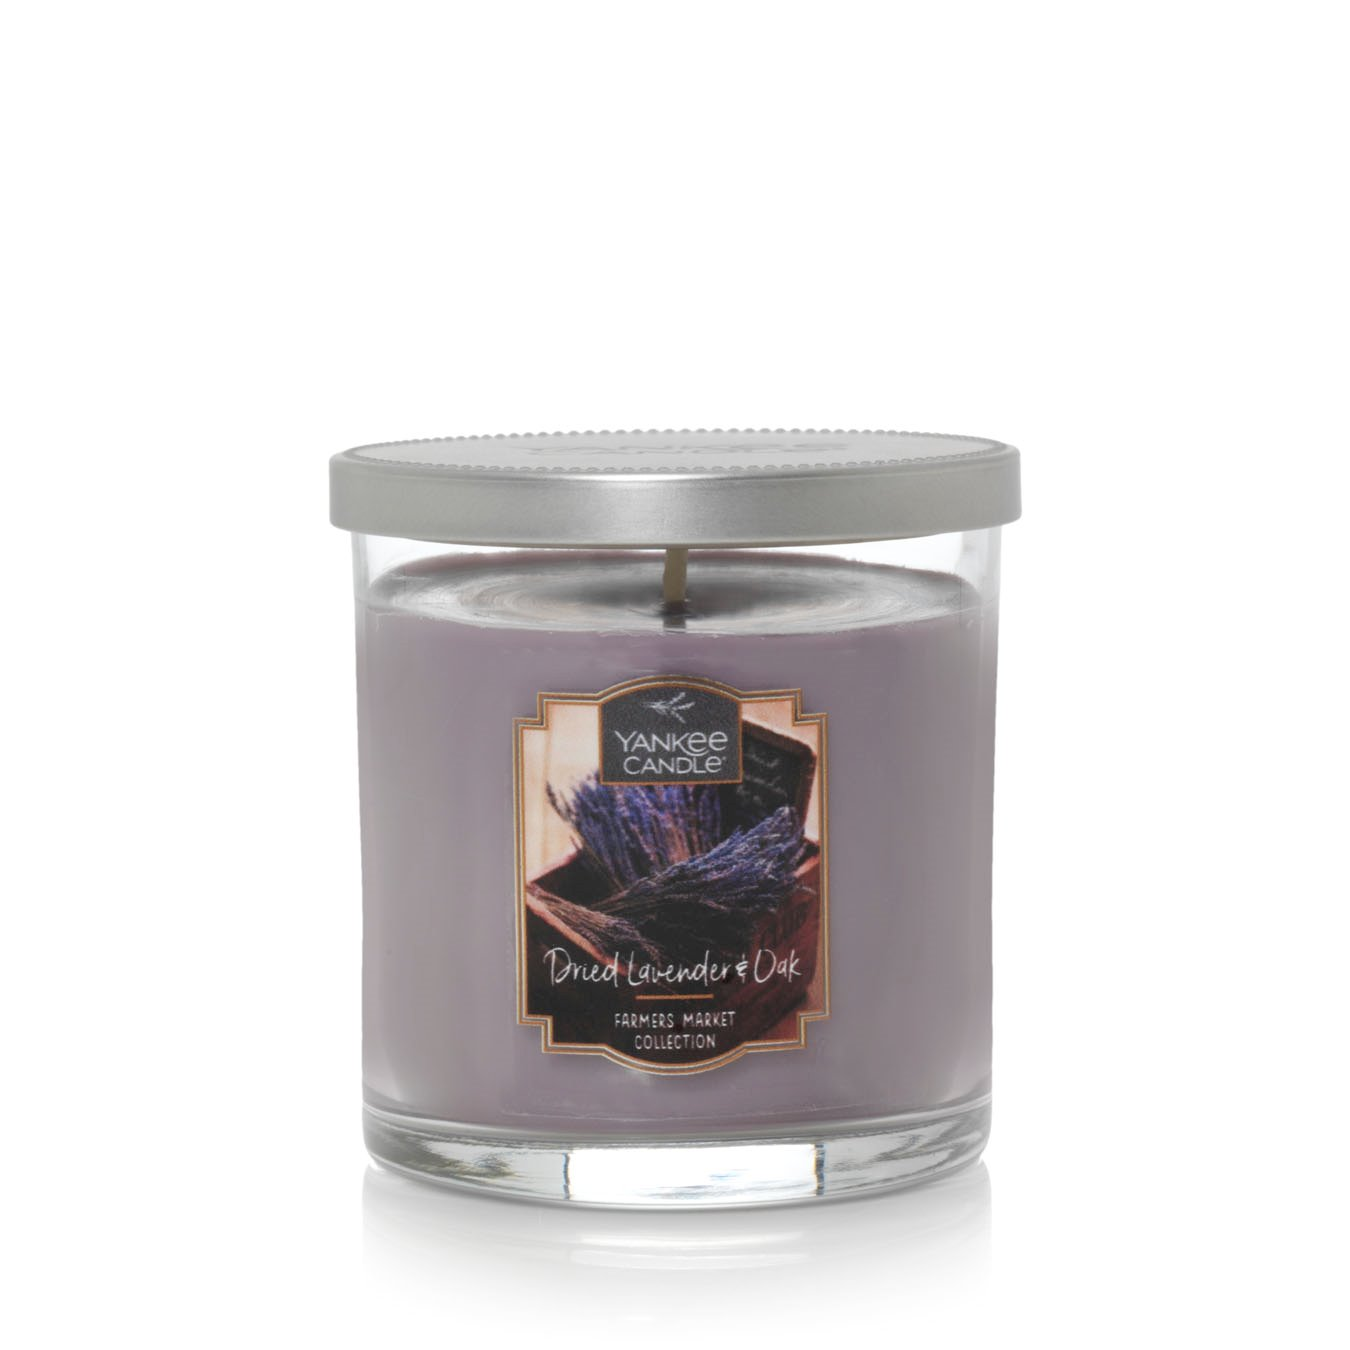 Yankee Candle Dried Lavender and Oak Regular Tumbler Candle